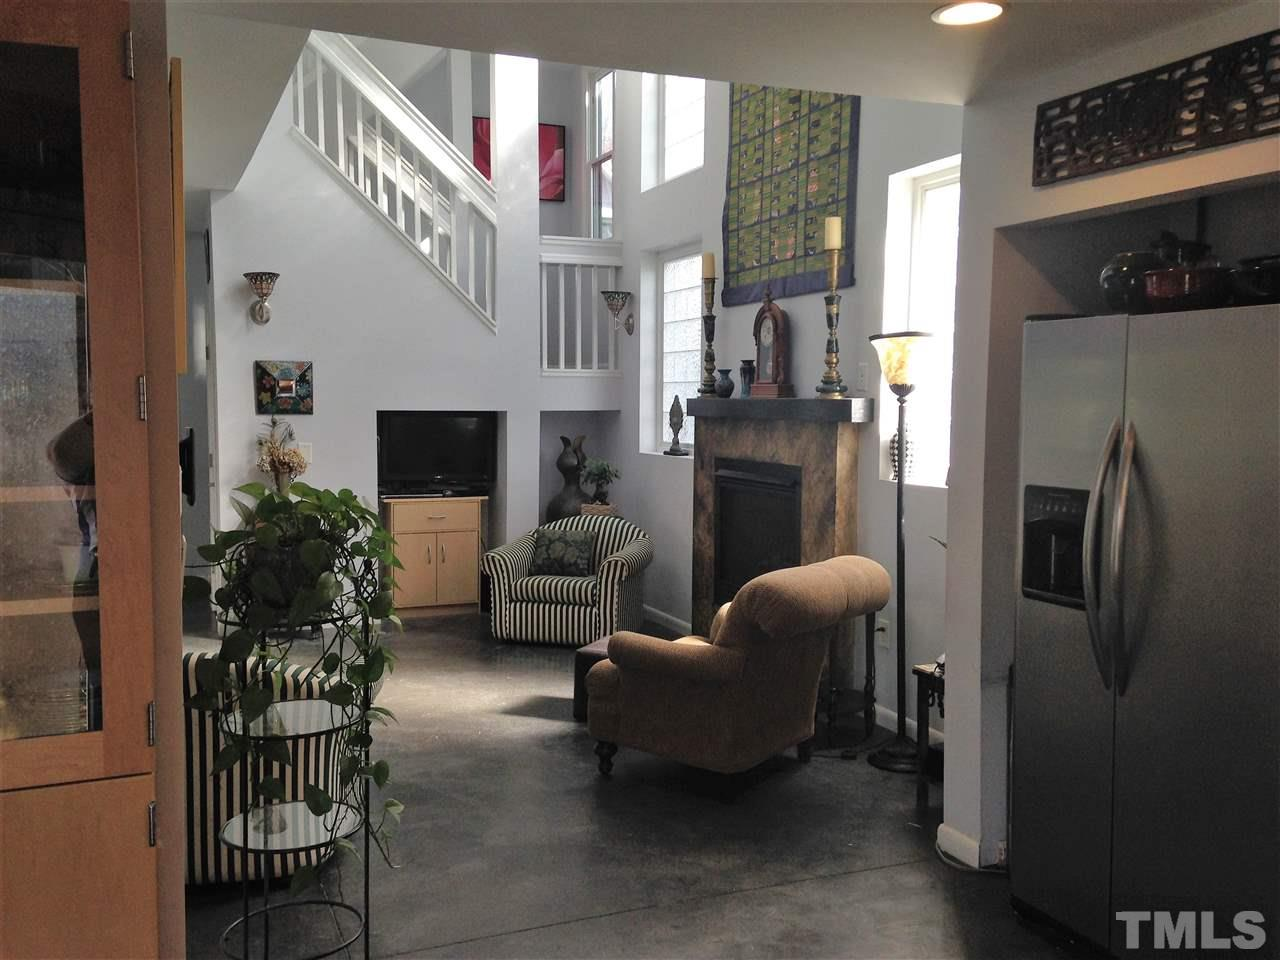 The house has a wonderful open and airy feeling with rooms flowing gracefully throughout. From the kitchen door entrance, you can look through the living room with soaring 2-story ceiling and see the dramatic staircase climbing to the 3rd floor.